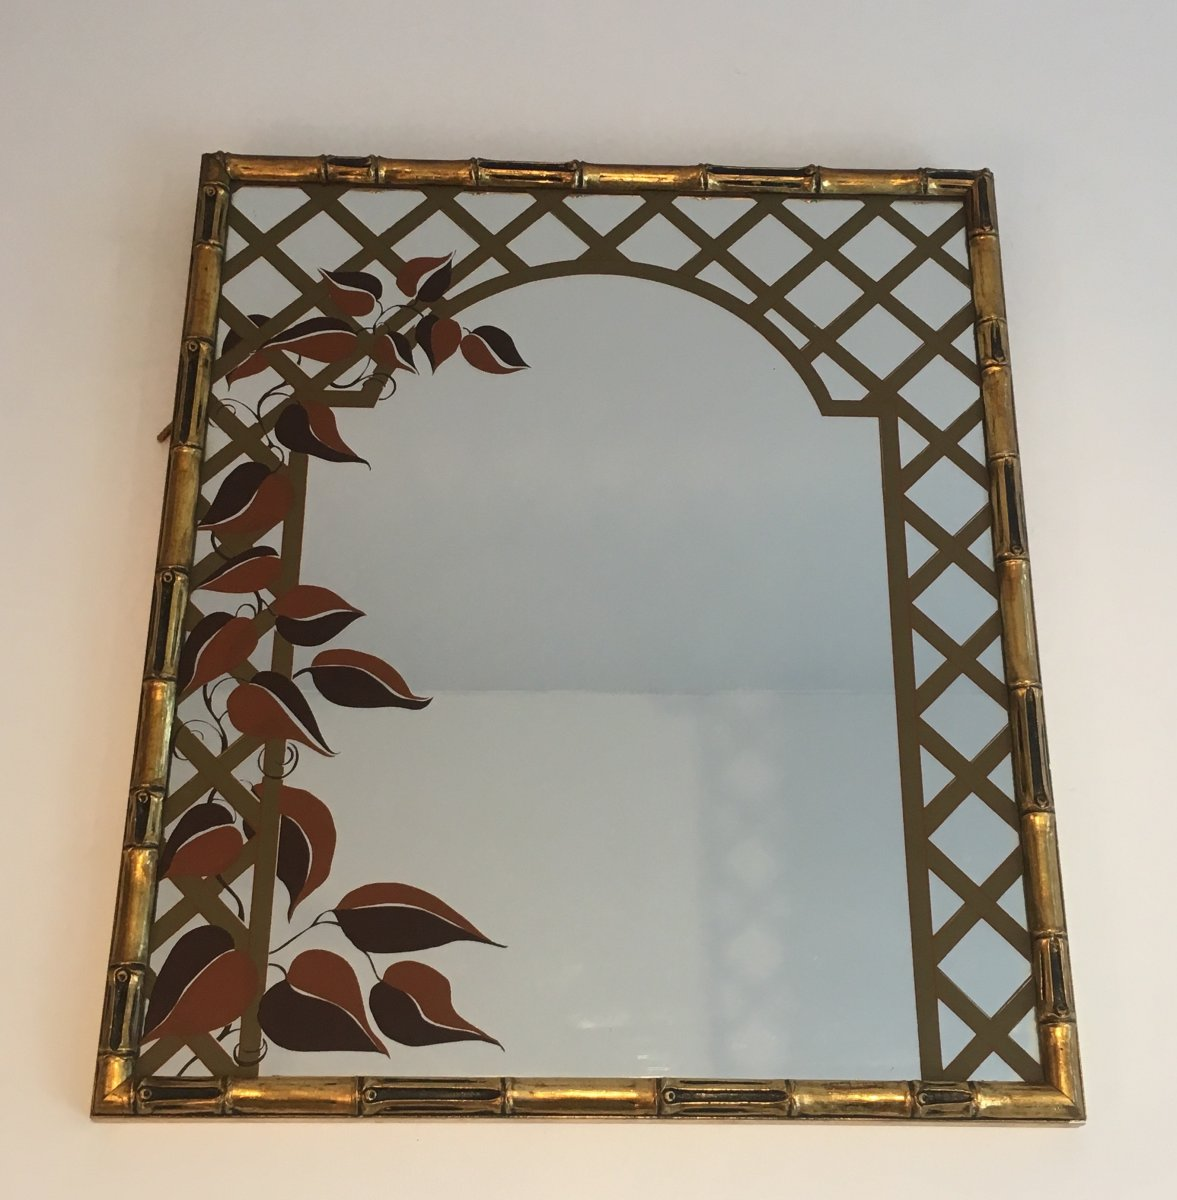 Decorative Faux-bamboo Gilt Wood Mirror With Printed Floral Decor. Circa 1970